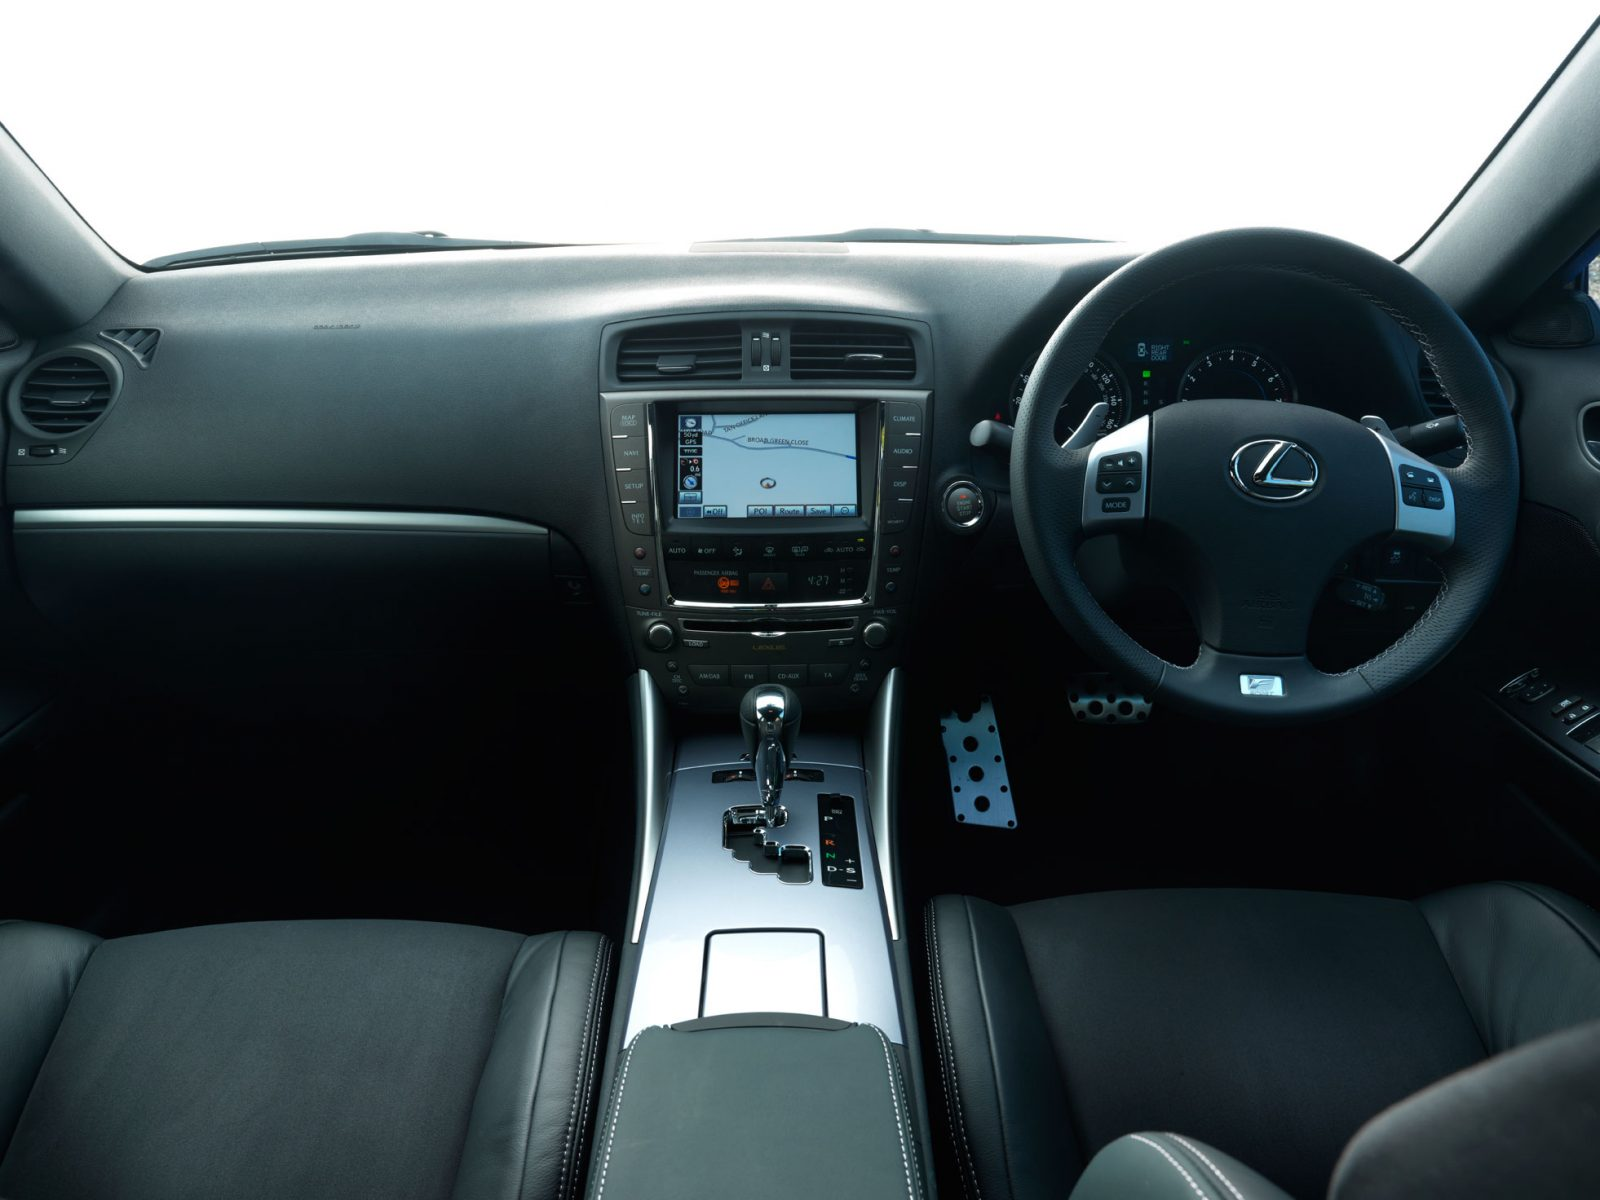 Lexus IS 250 interior twin-chamber front passenger airbag